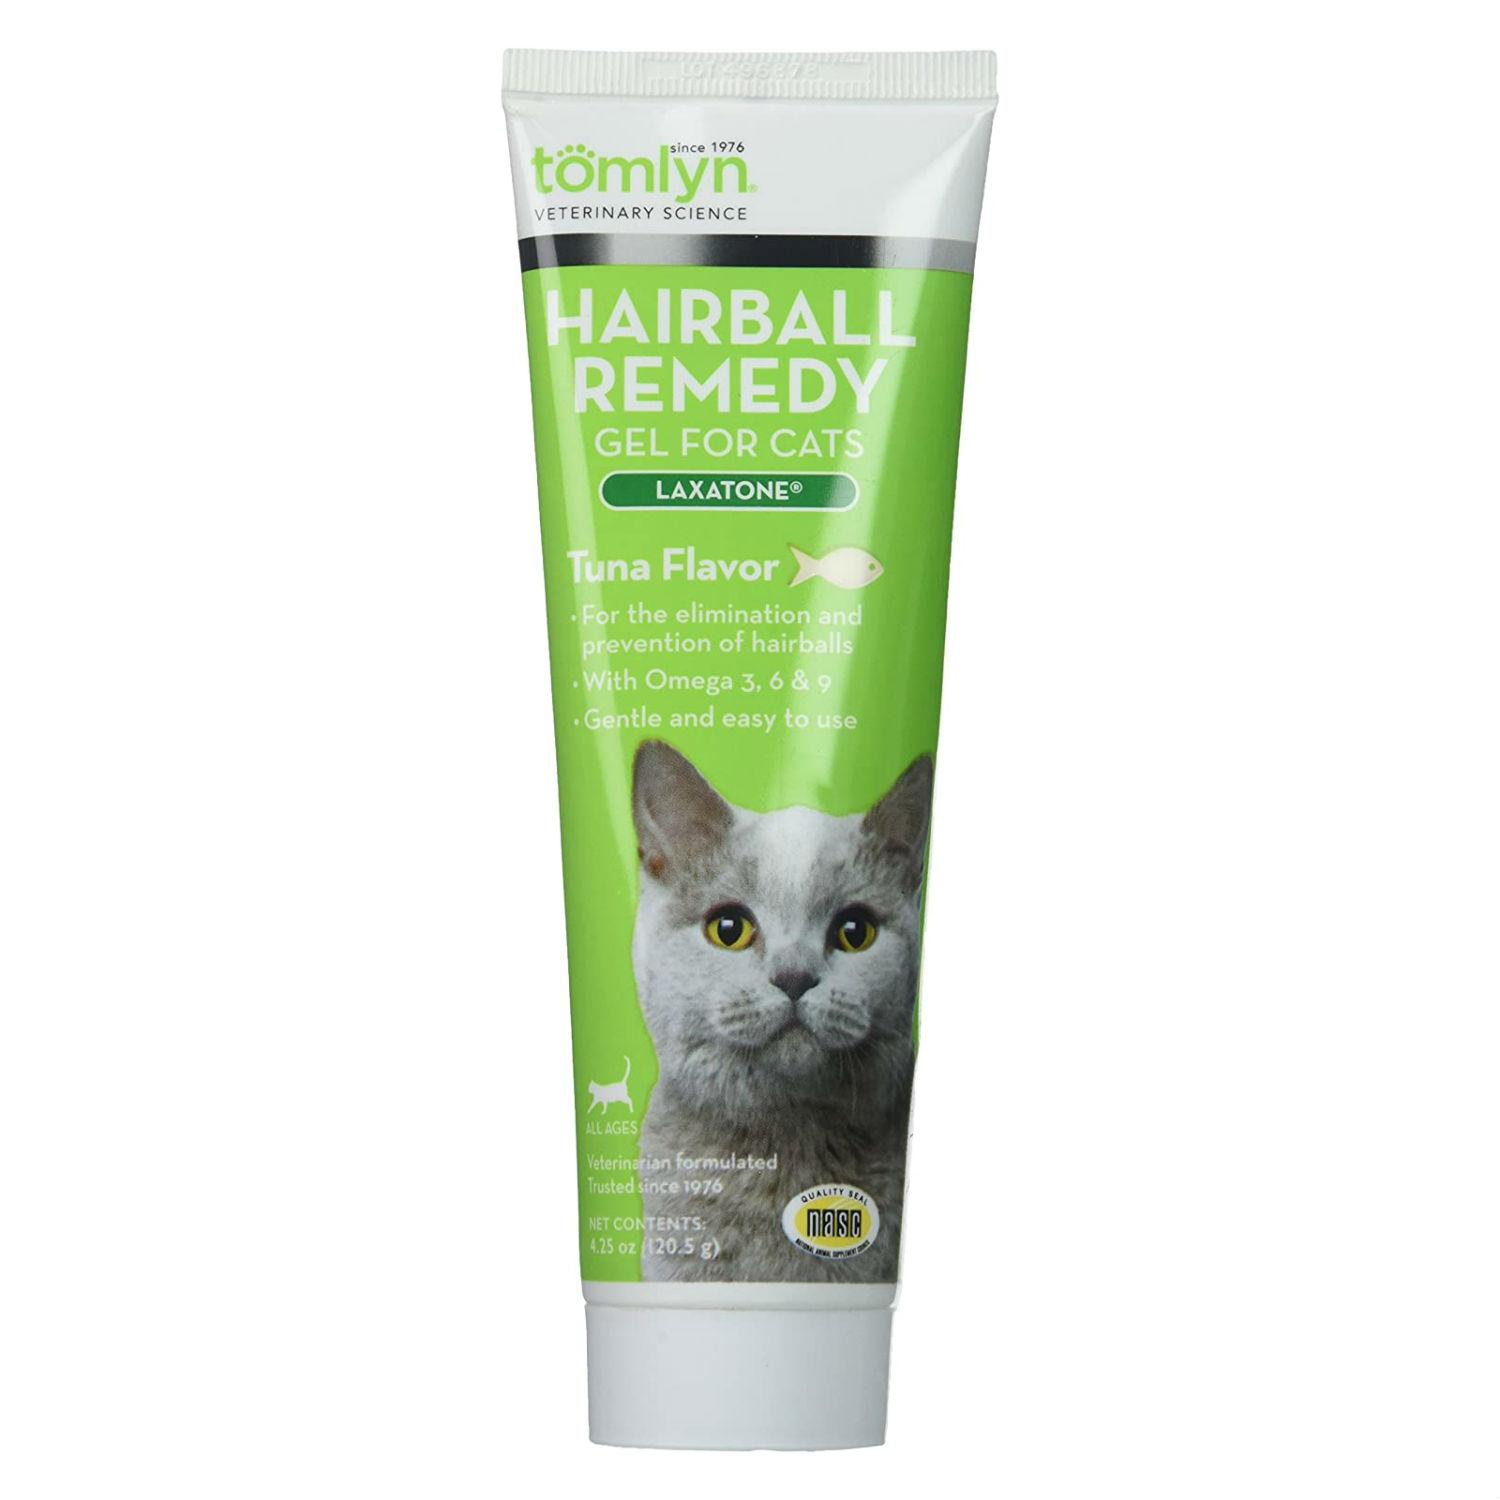 Tomlyn Laxatone Hairball Remedy Gel for Cats - Tuna